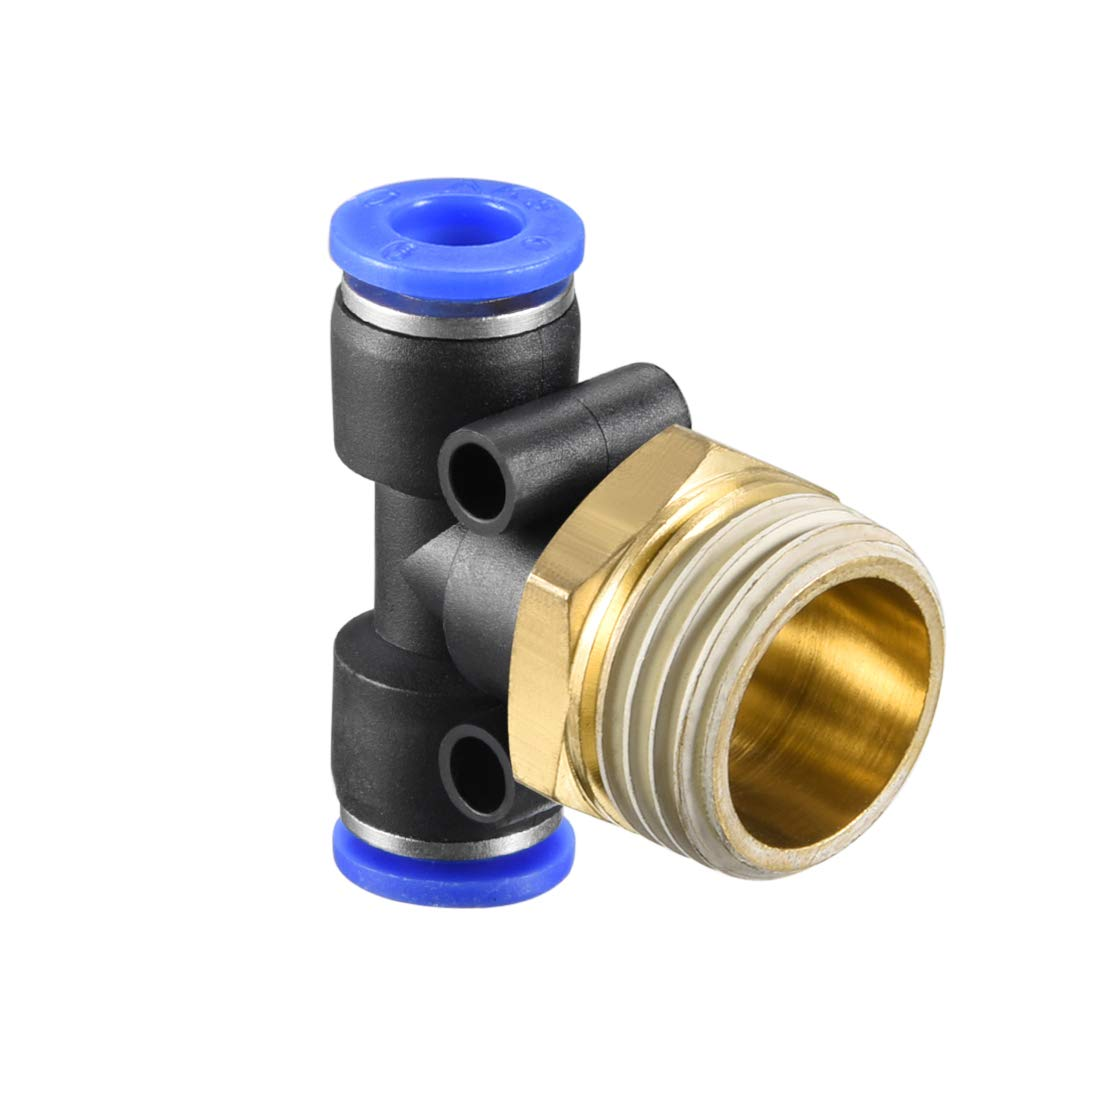 Plastic Tee Push to Connect Tube Fittings 10 mm or 25//64OD x 1//4 G Male Thread Push Lock Blue 8 Pieces